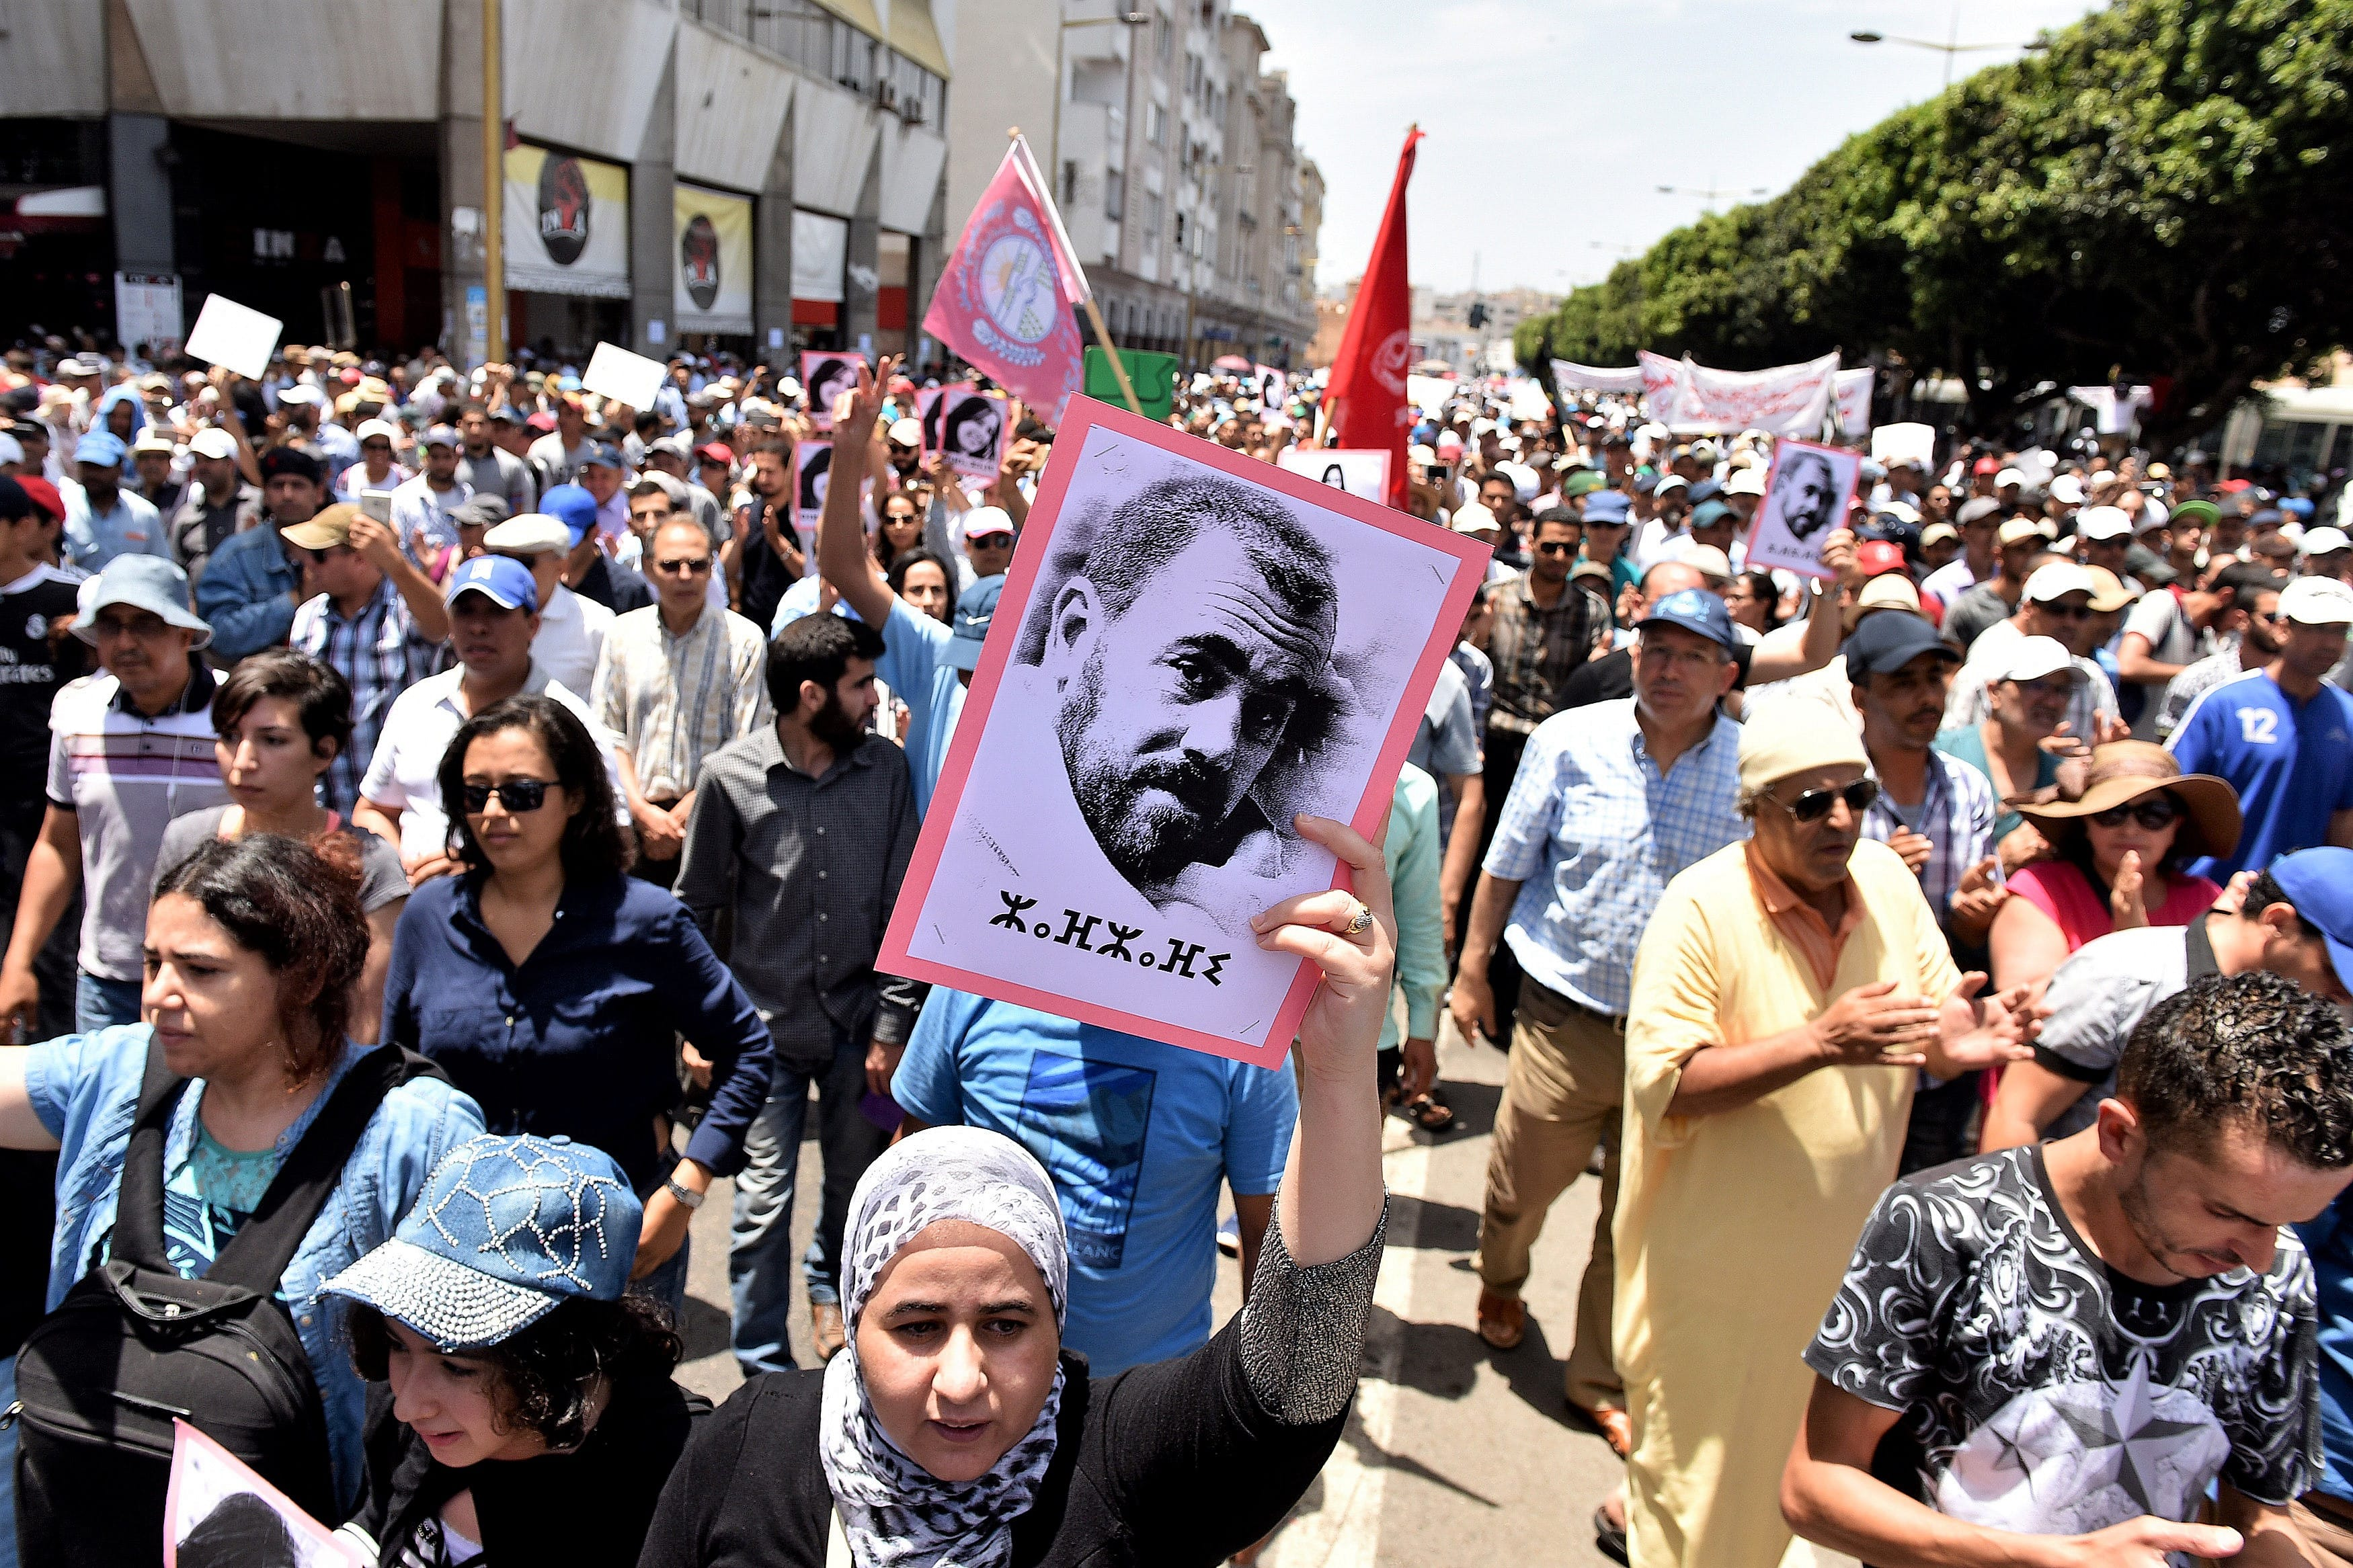 Online and Traditional Forms of Protest Mobilization: Morocco's Rif Protests and Beyond